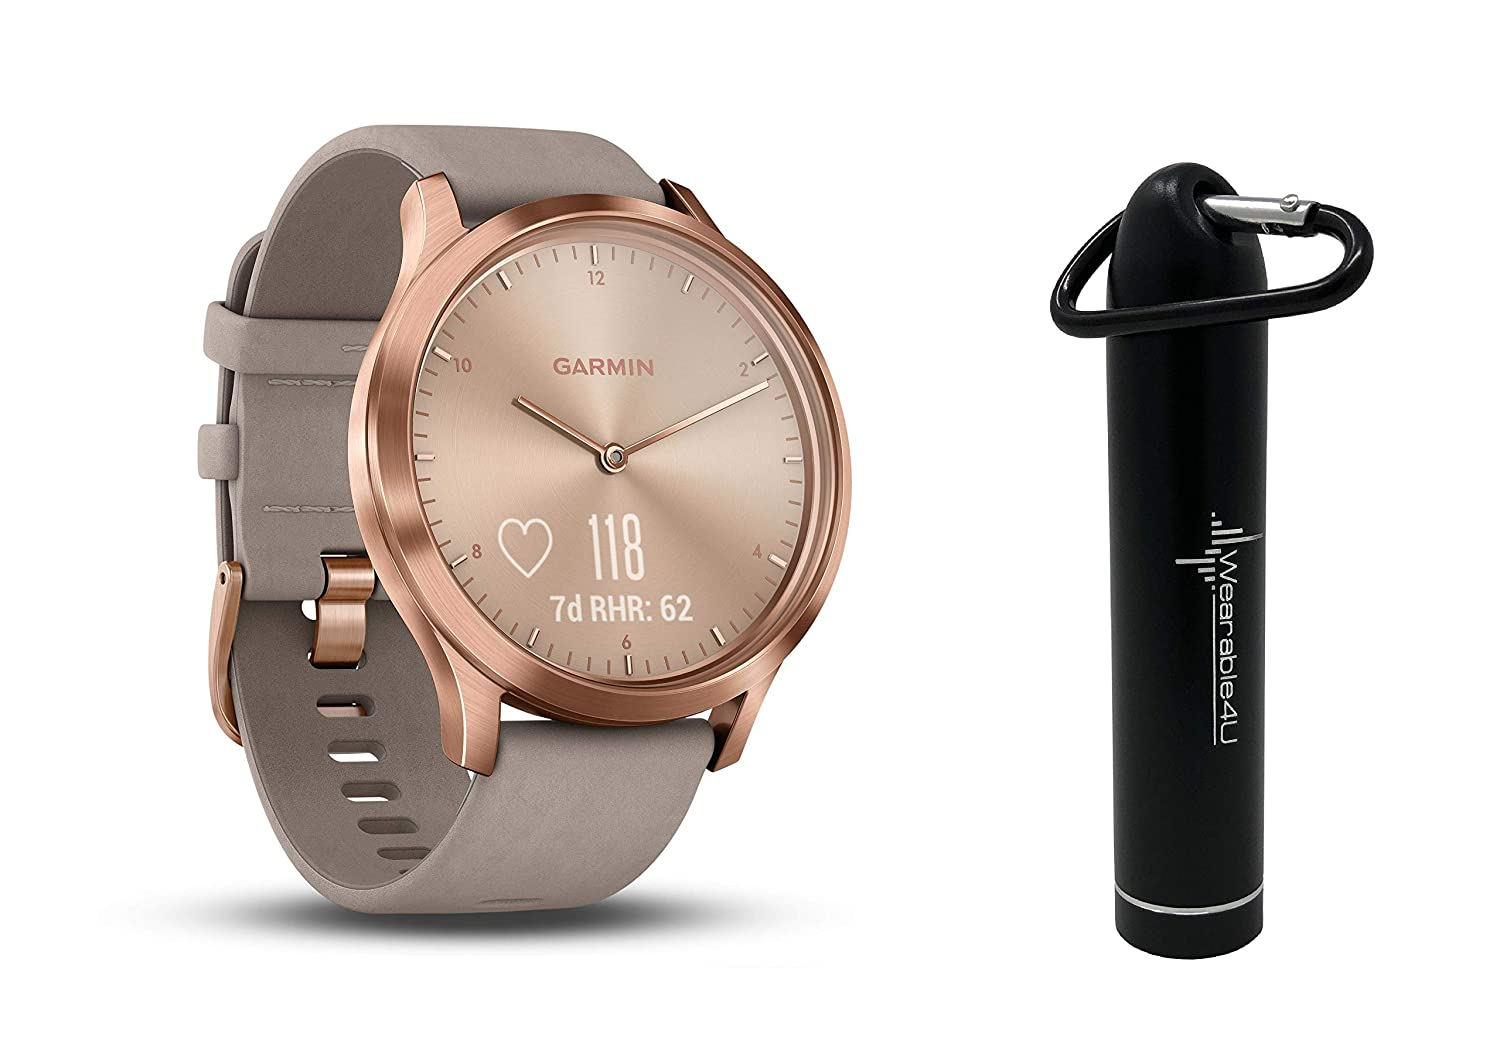 Garmin Vivomove HR Multi Sport Hybrid Smartwatch with Wearable4U Compact Power Bank Bundle (L: 148-215 mm, Premium, Rose Gold with Gray Suede Band)